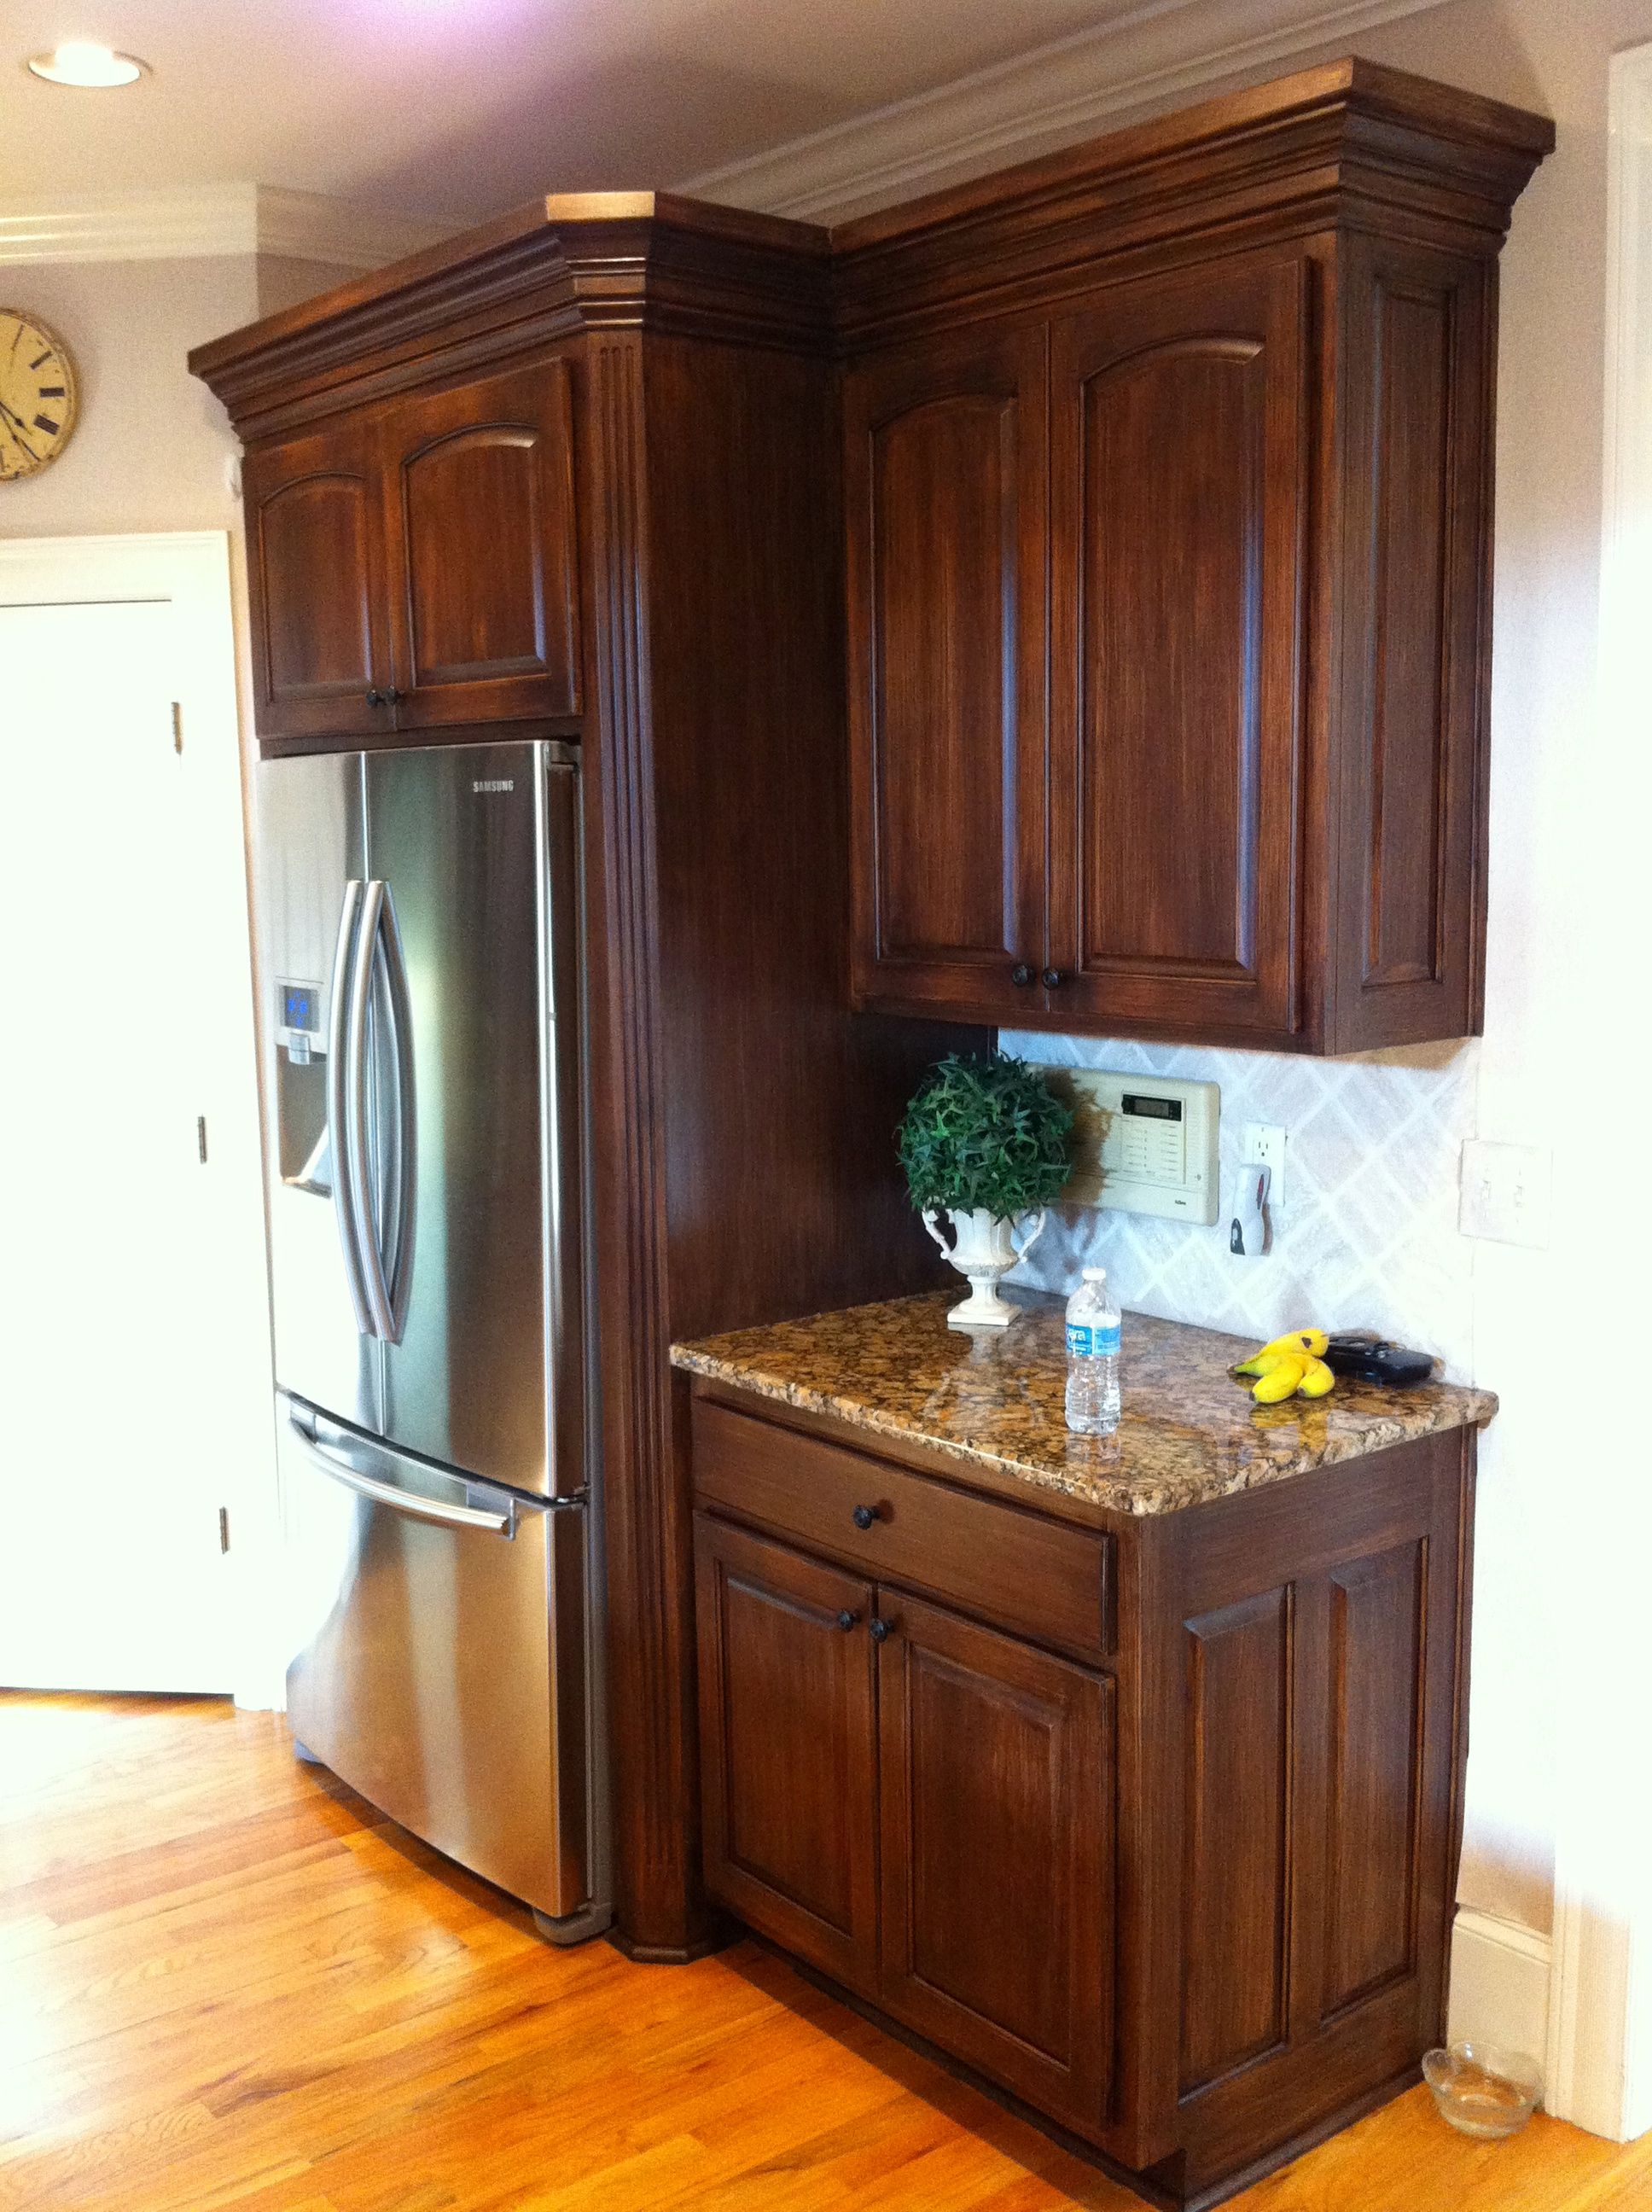 Best Faux Wood Grain On Mdf Kitchen Cabinets By Www Kbwalls Com 640 x 480